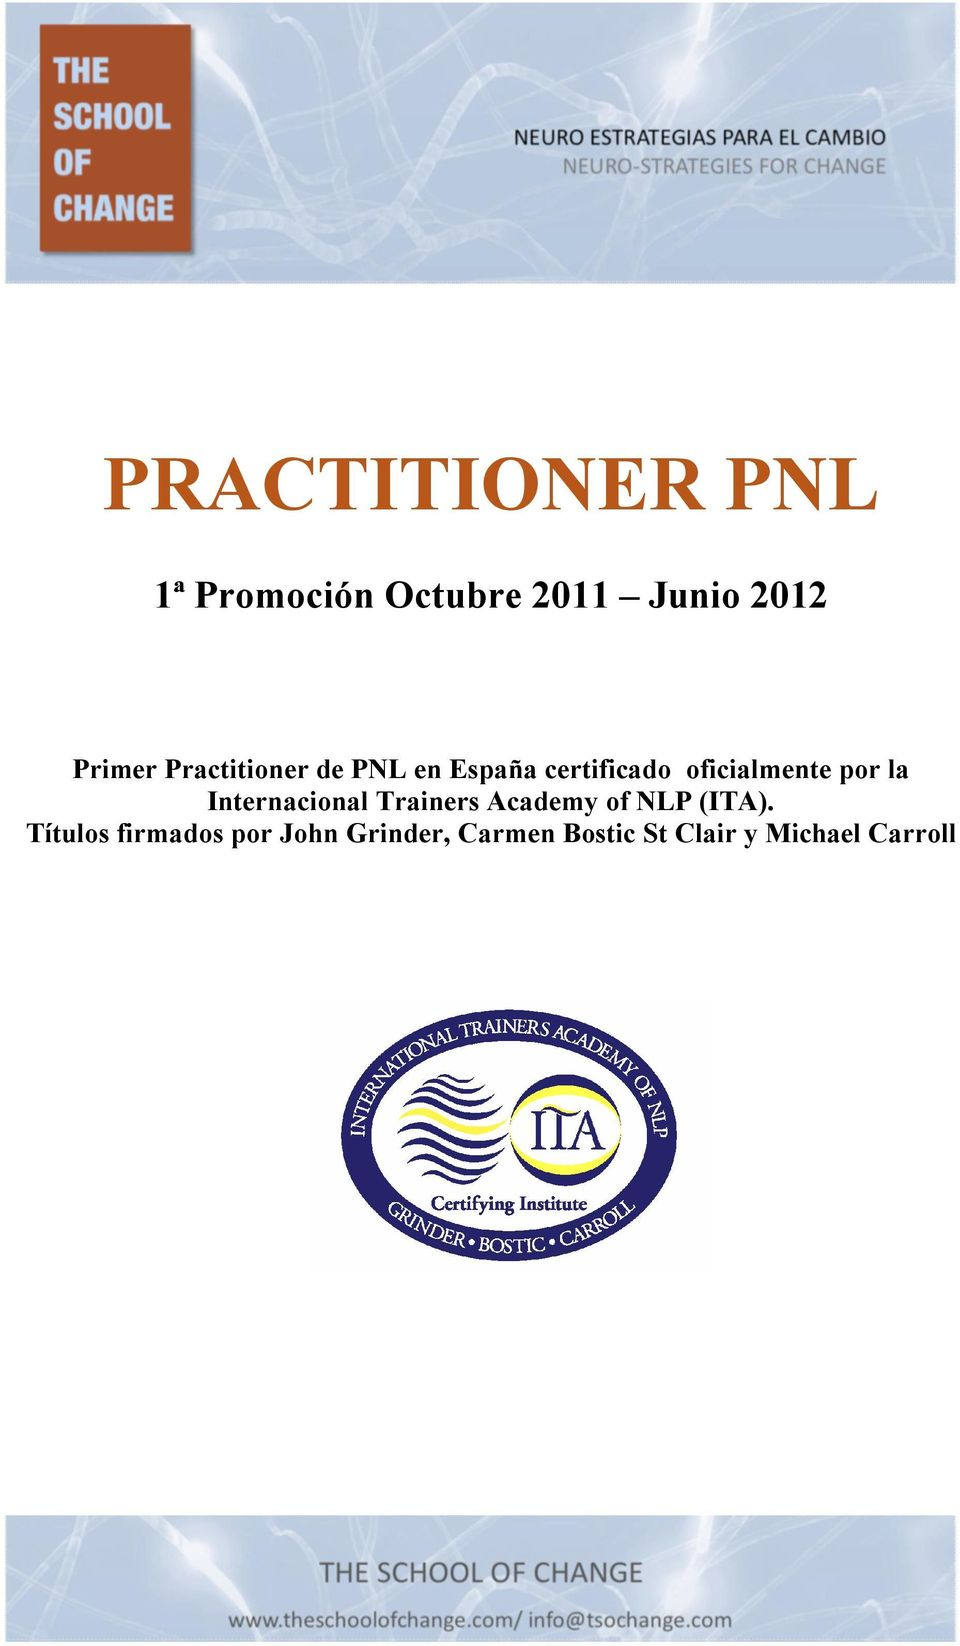 la Internacional Trainers Academy of NLP (ITA).